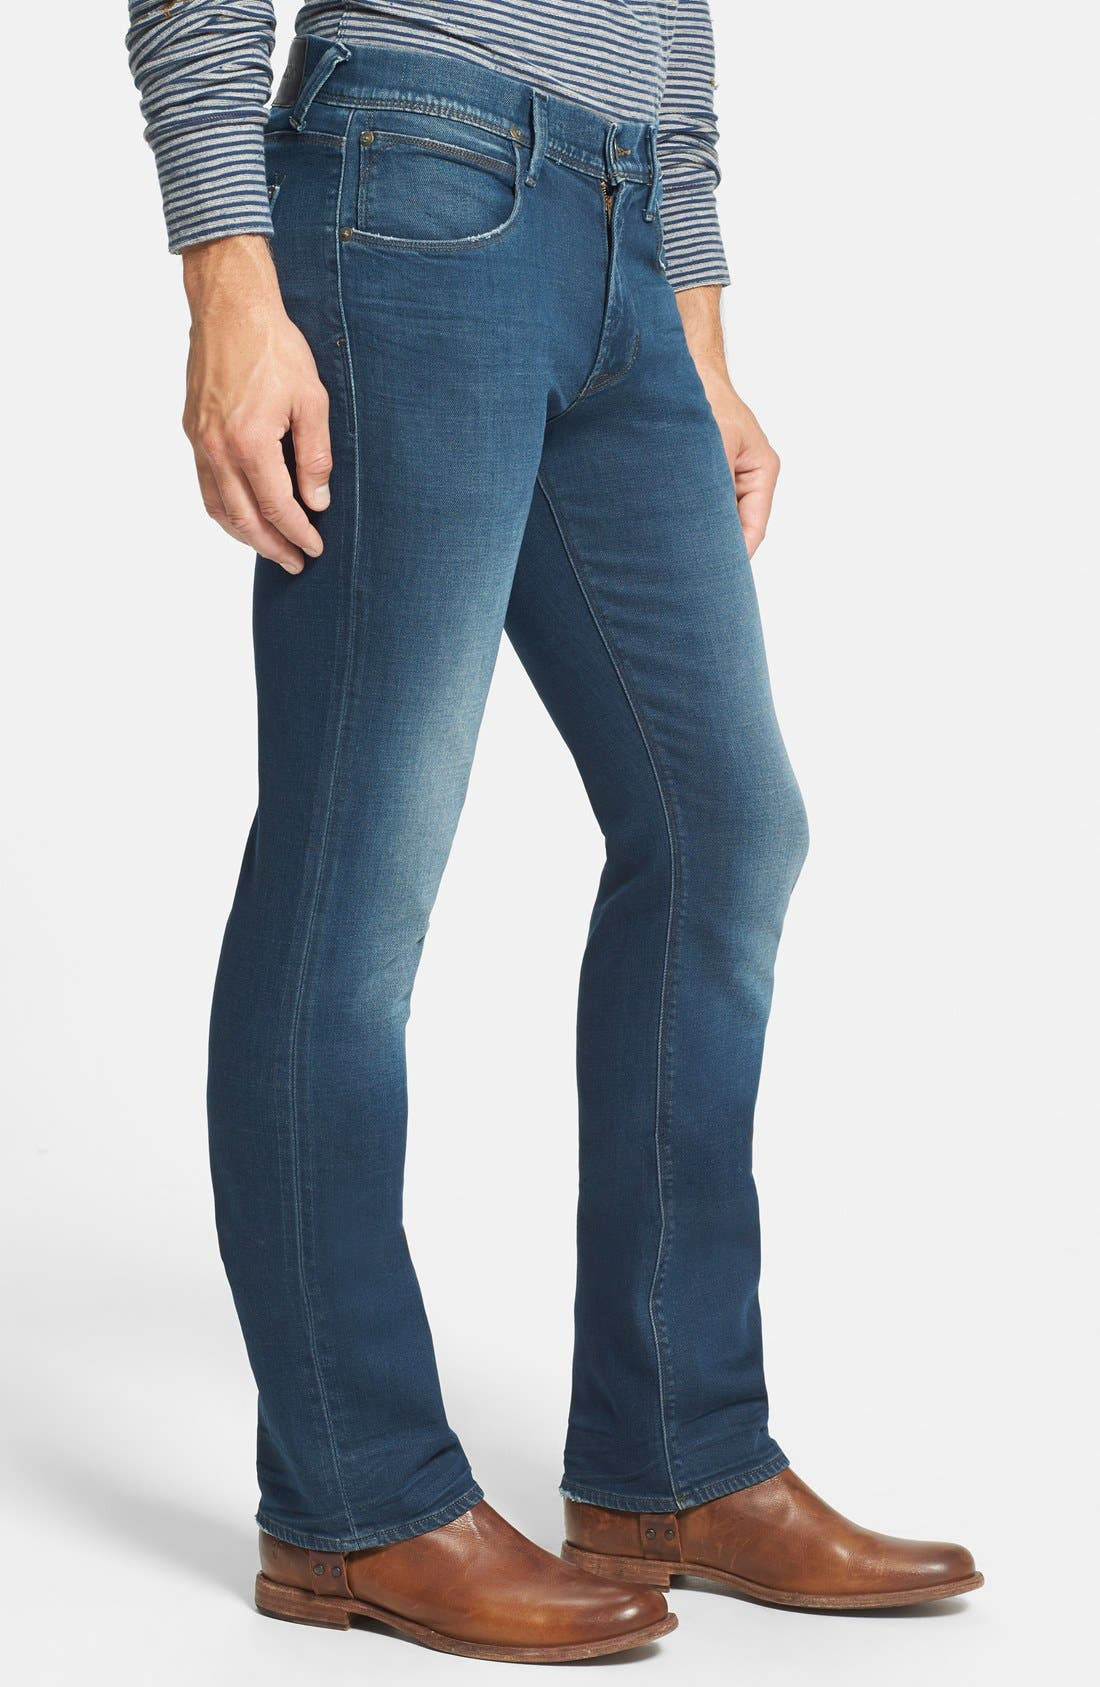 HUDSON JEANS,                             'Clifton' Bootcut Jeans,                             Alternate thumbnail 4, color,                             403